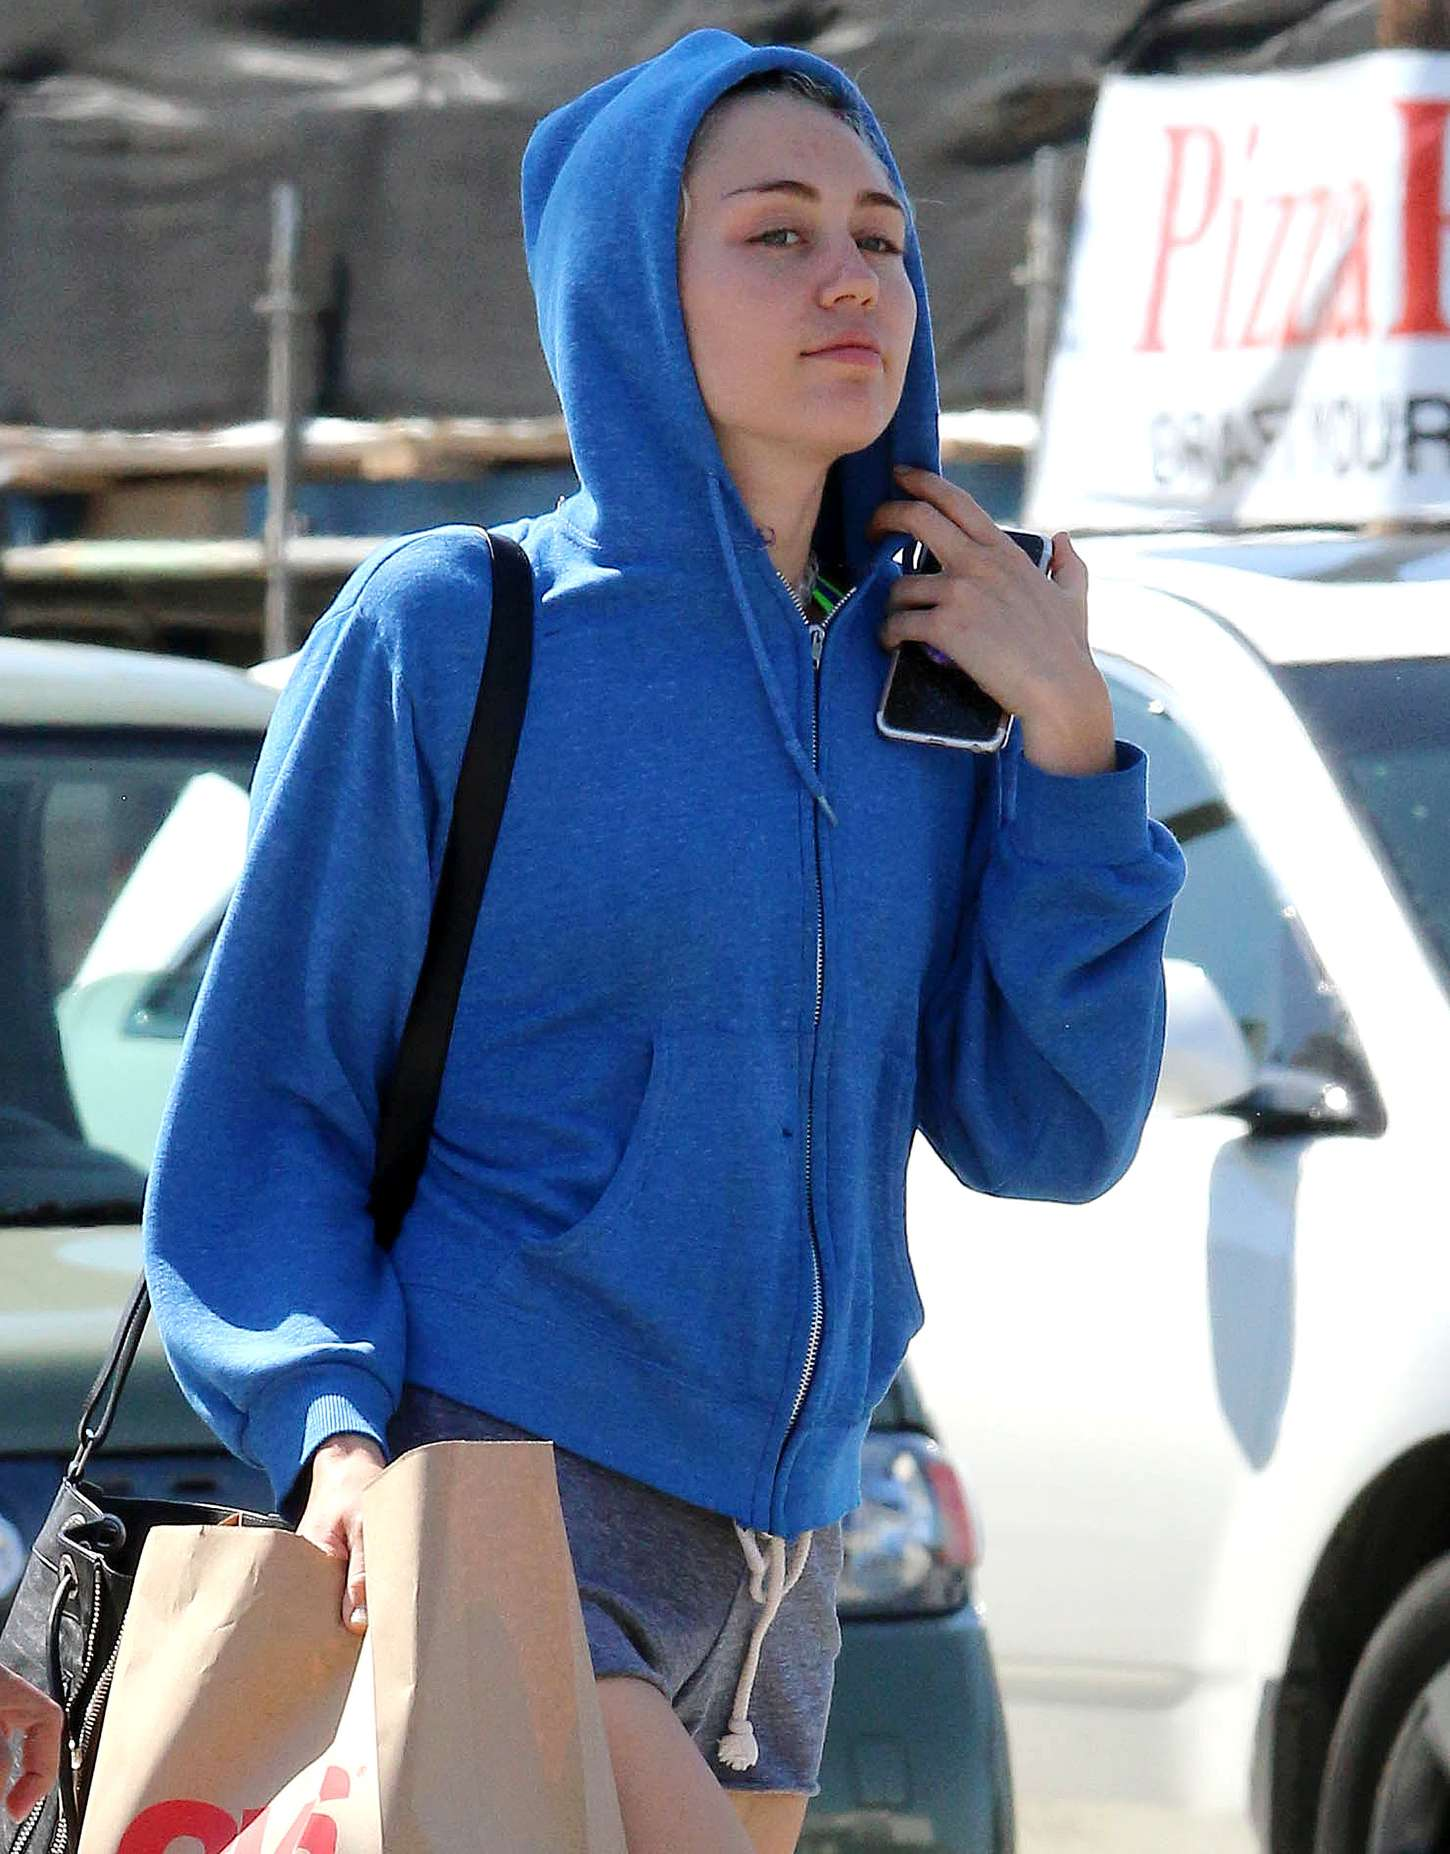 884666f77ce65 Miley Cyrus Booty in Shorts -04 – GotCeleb